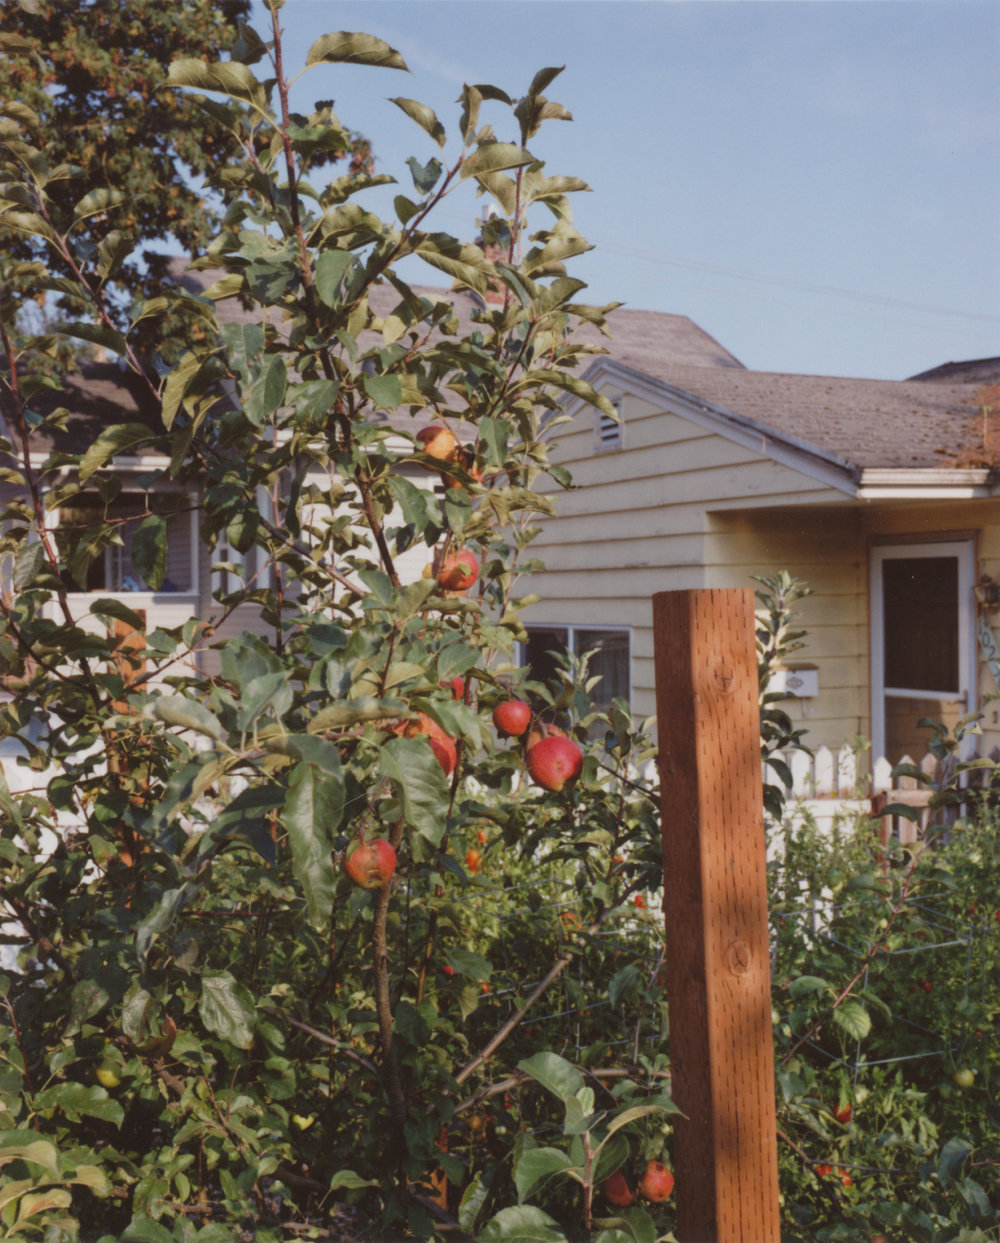 - Portland, Oregon2014Chromogenic print20 x 16 inches